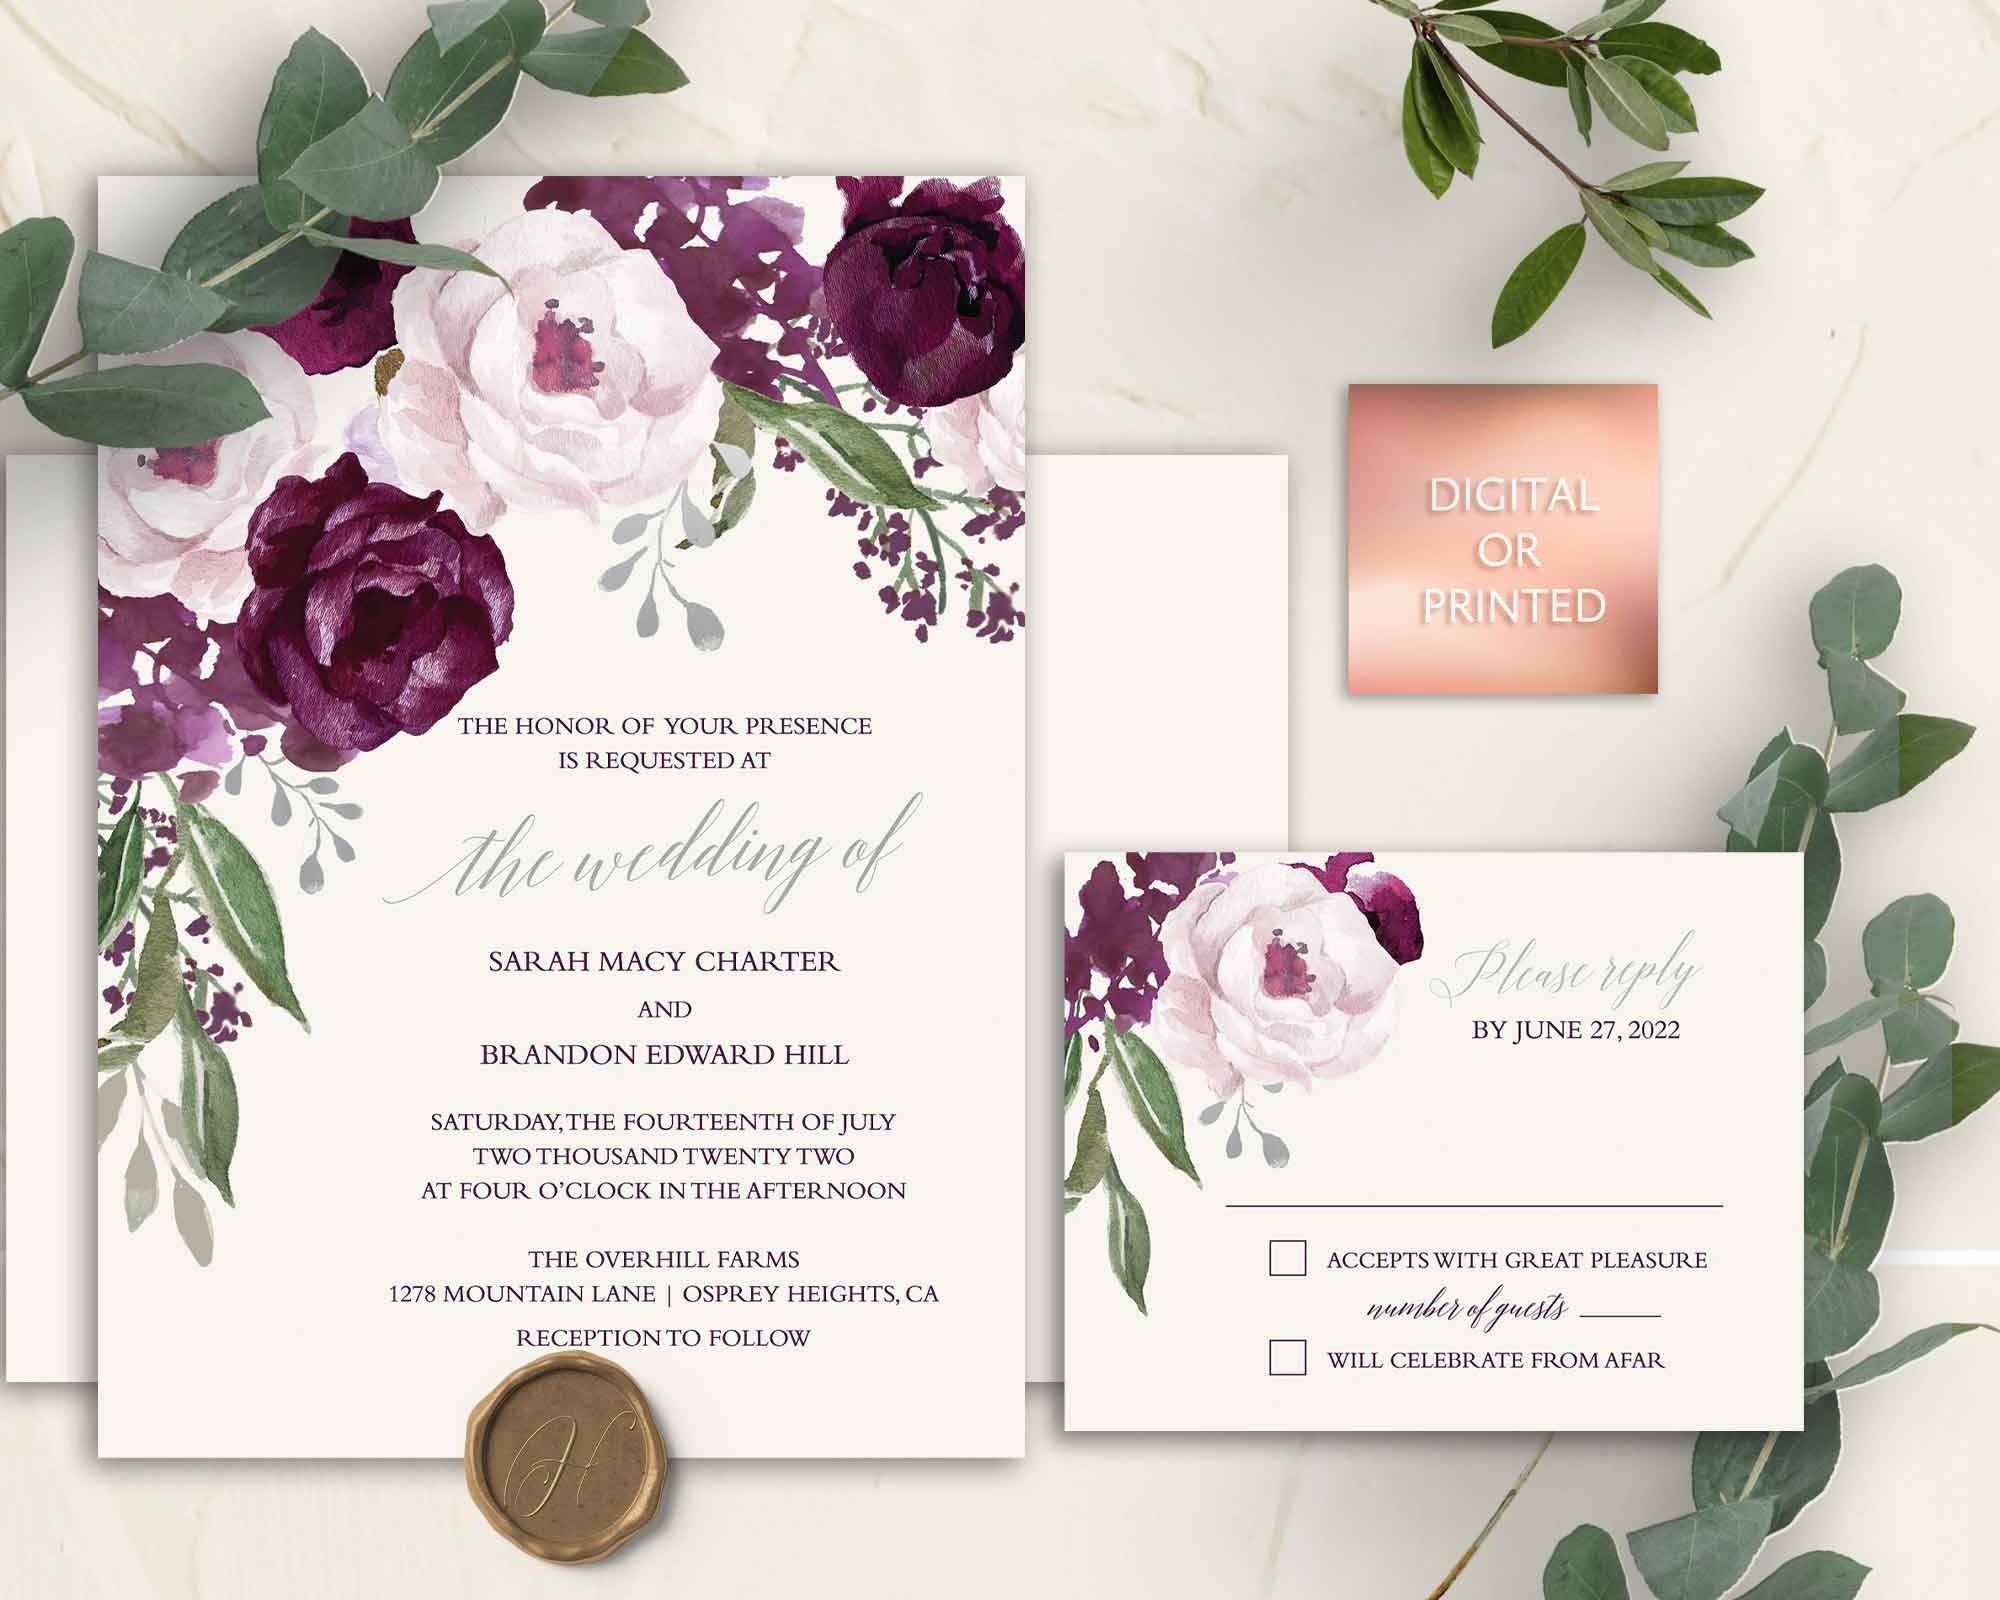 Purple Wedding Invitation Set Plum Wedding Invites Watercolor Floral Digital Or Printed Template Bohemian Floral Wedding Invites Suite In 2020 Purple Wedding Invitations Plum Wedding Invitations Plum Wedding